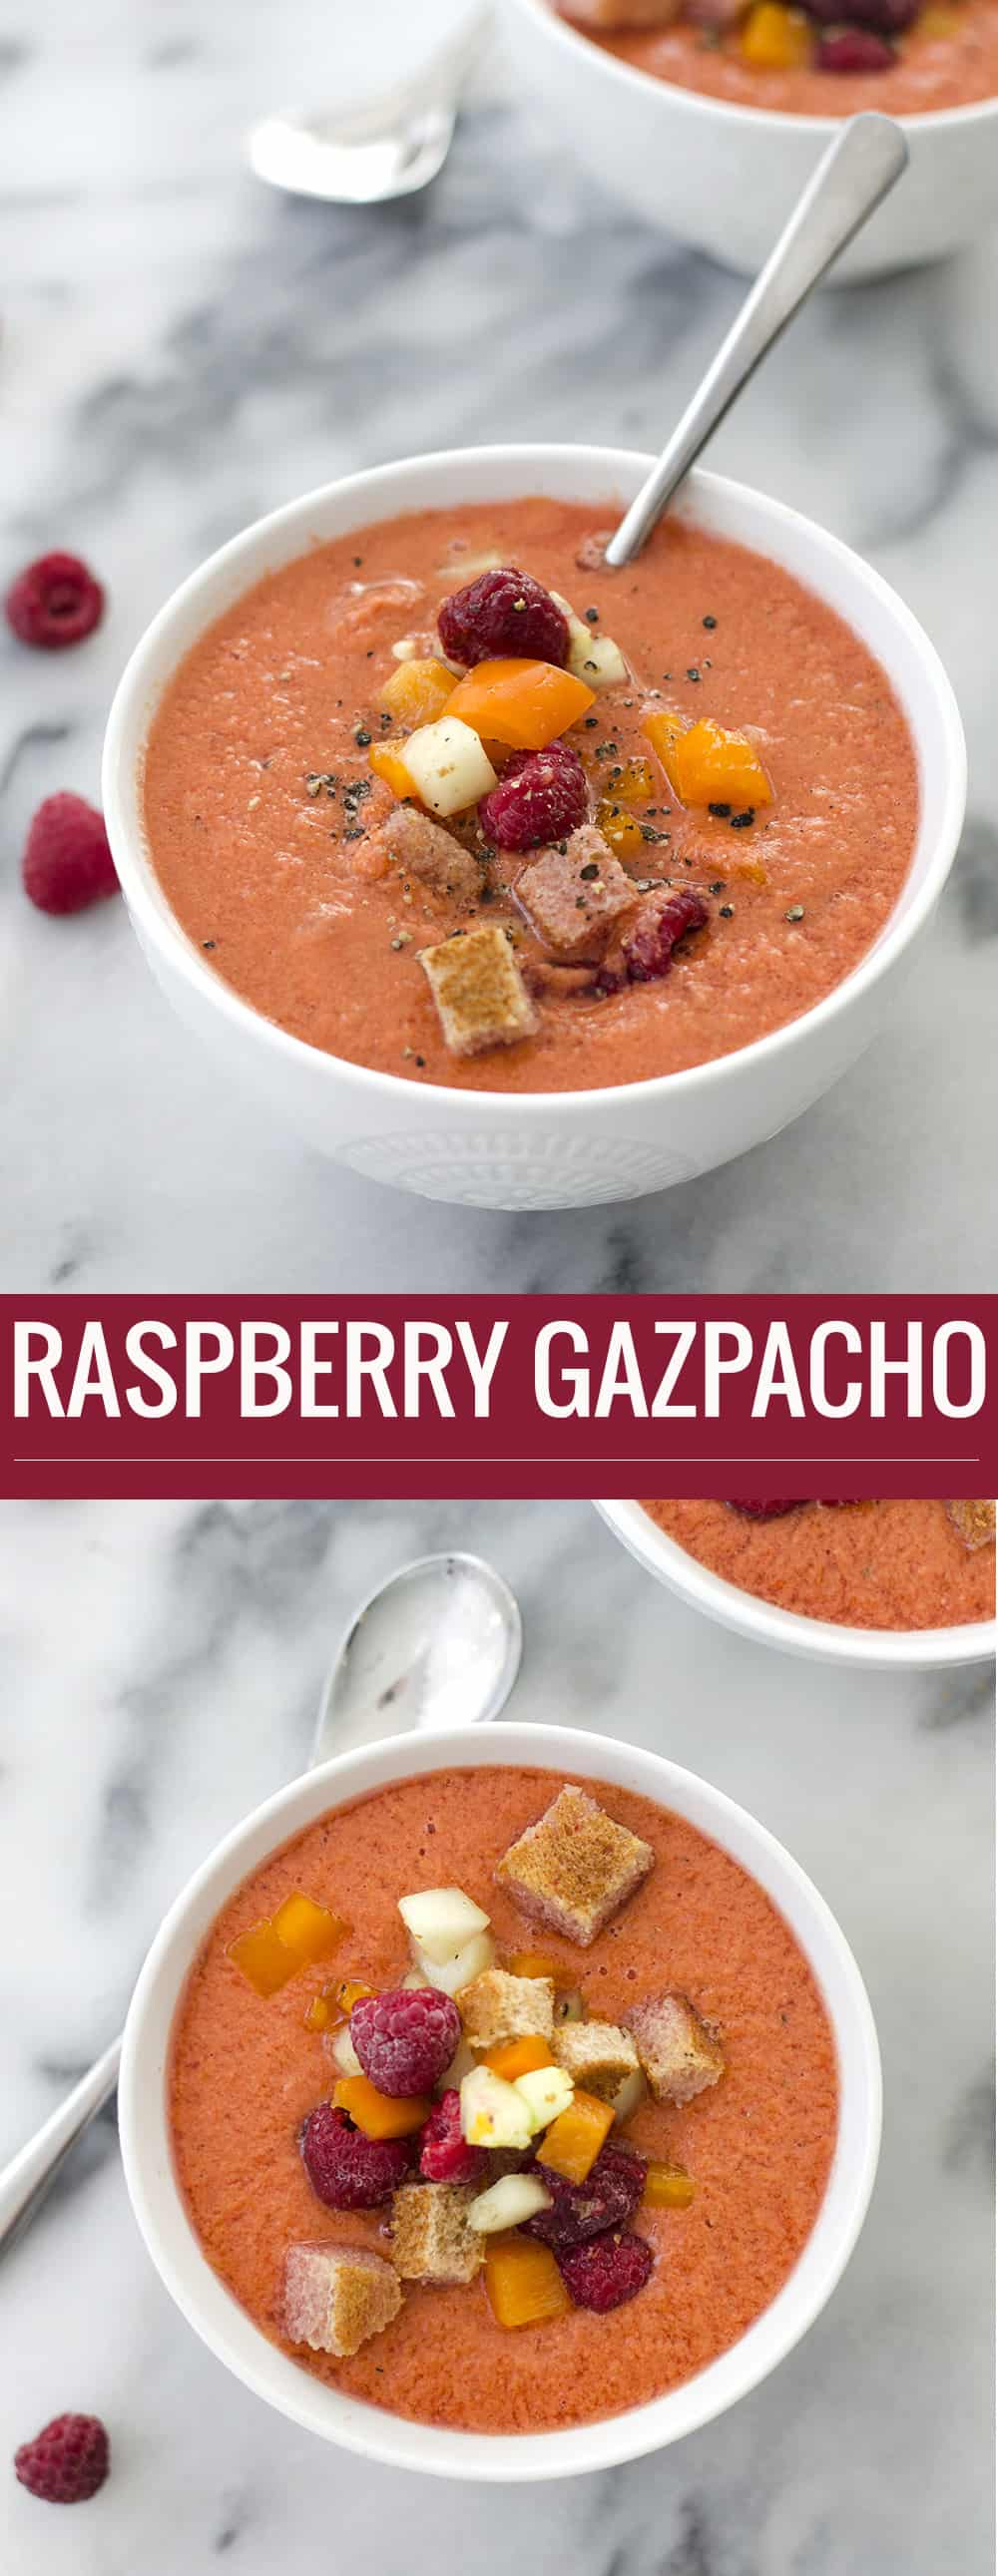 Vegan Raspberry Gazpacho! The perfect summer soup recipe. Frozen raspberries, peppers and spices blended together for a refreshing summer soup. | Vegan | delishknowledge.com